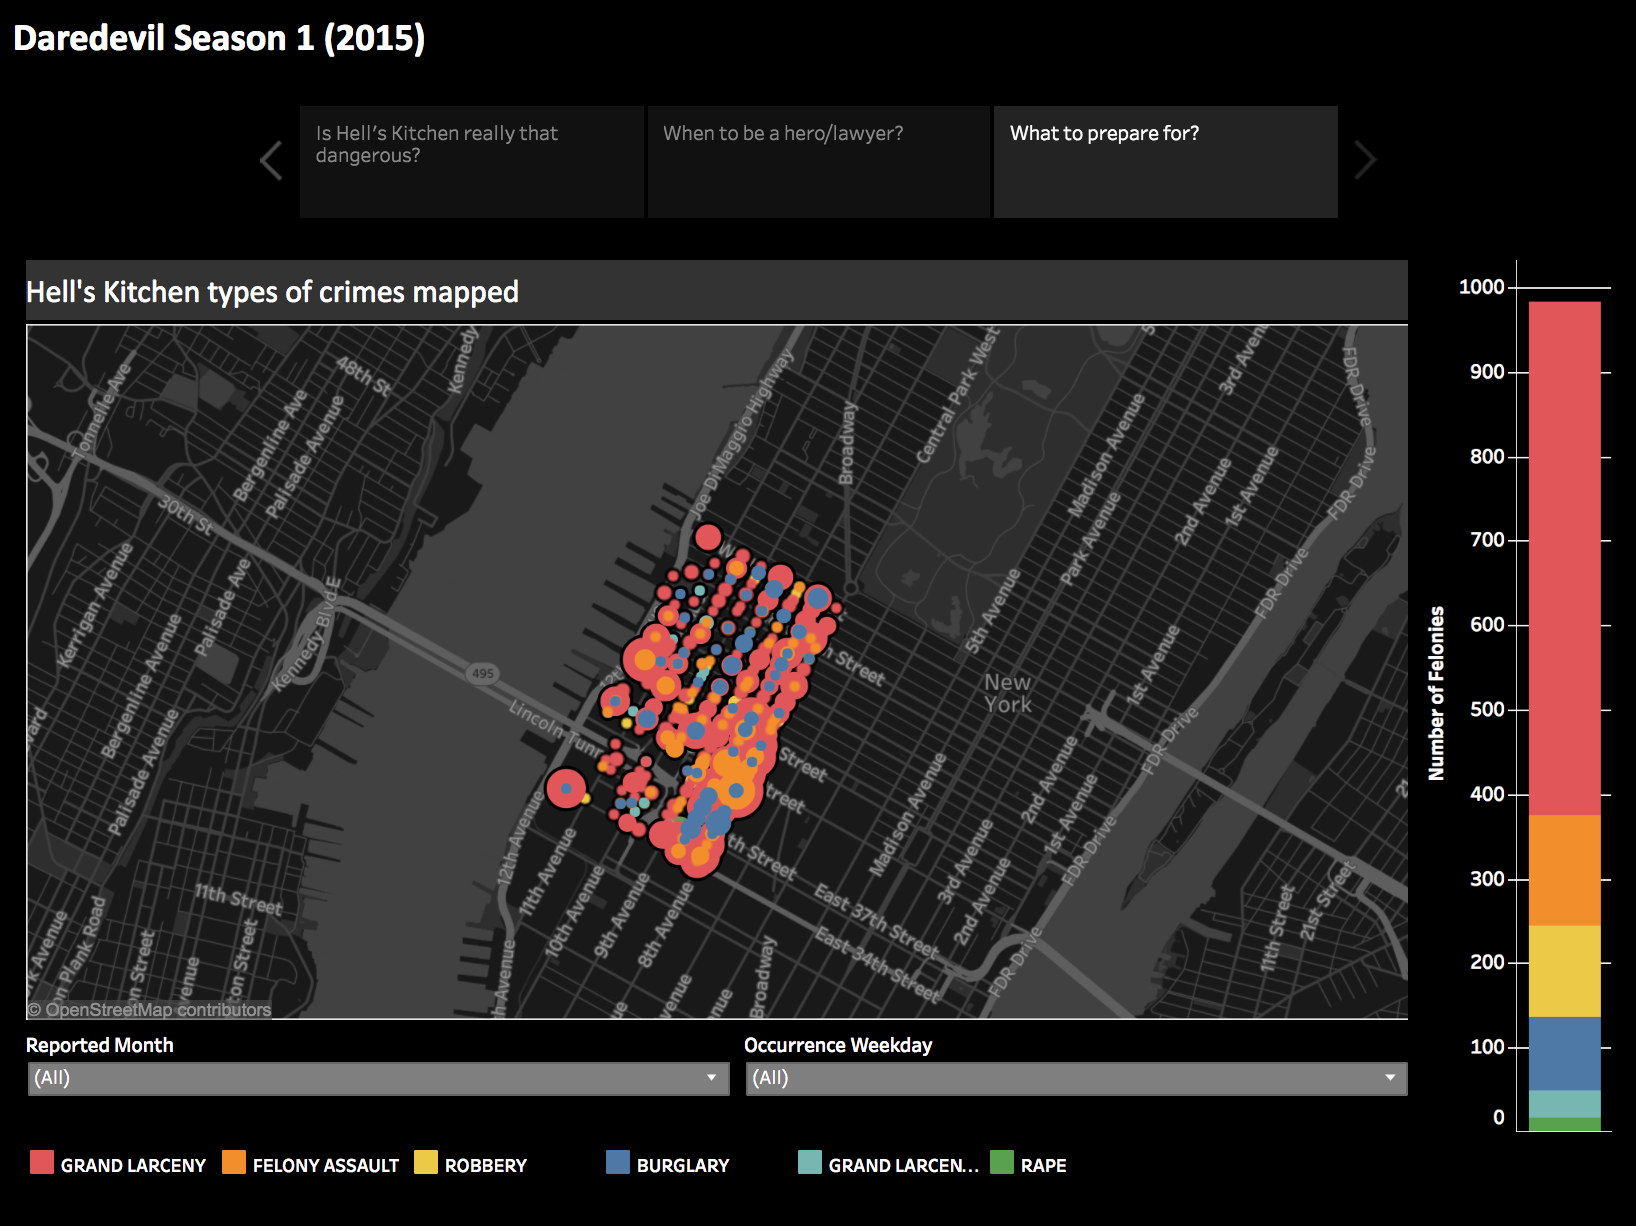 Wiktoria Gryniec explores crimes in New York's Hell's Kitchen neighborhood in this story points viz